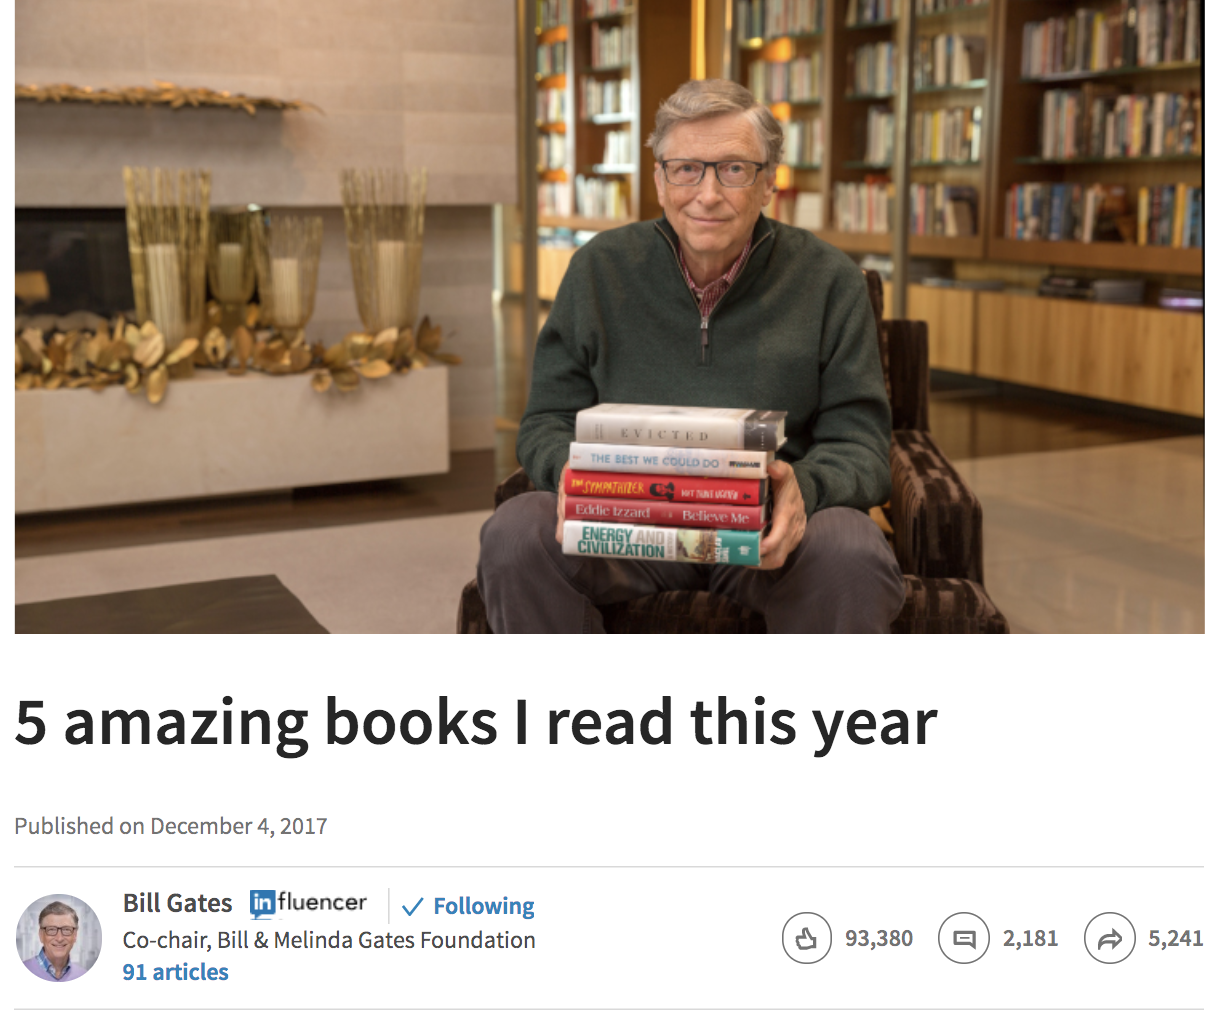 If Bill Gates can find time to read books, so can you.